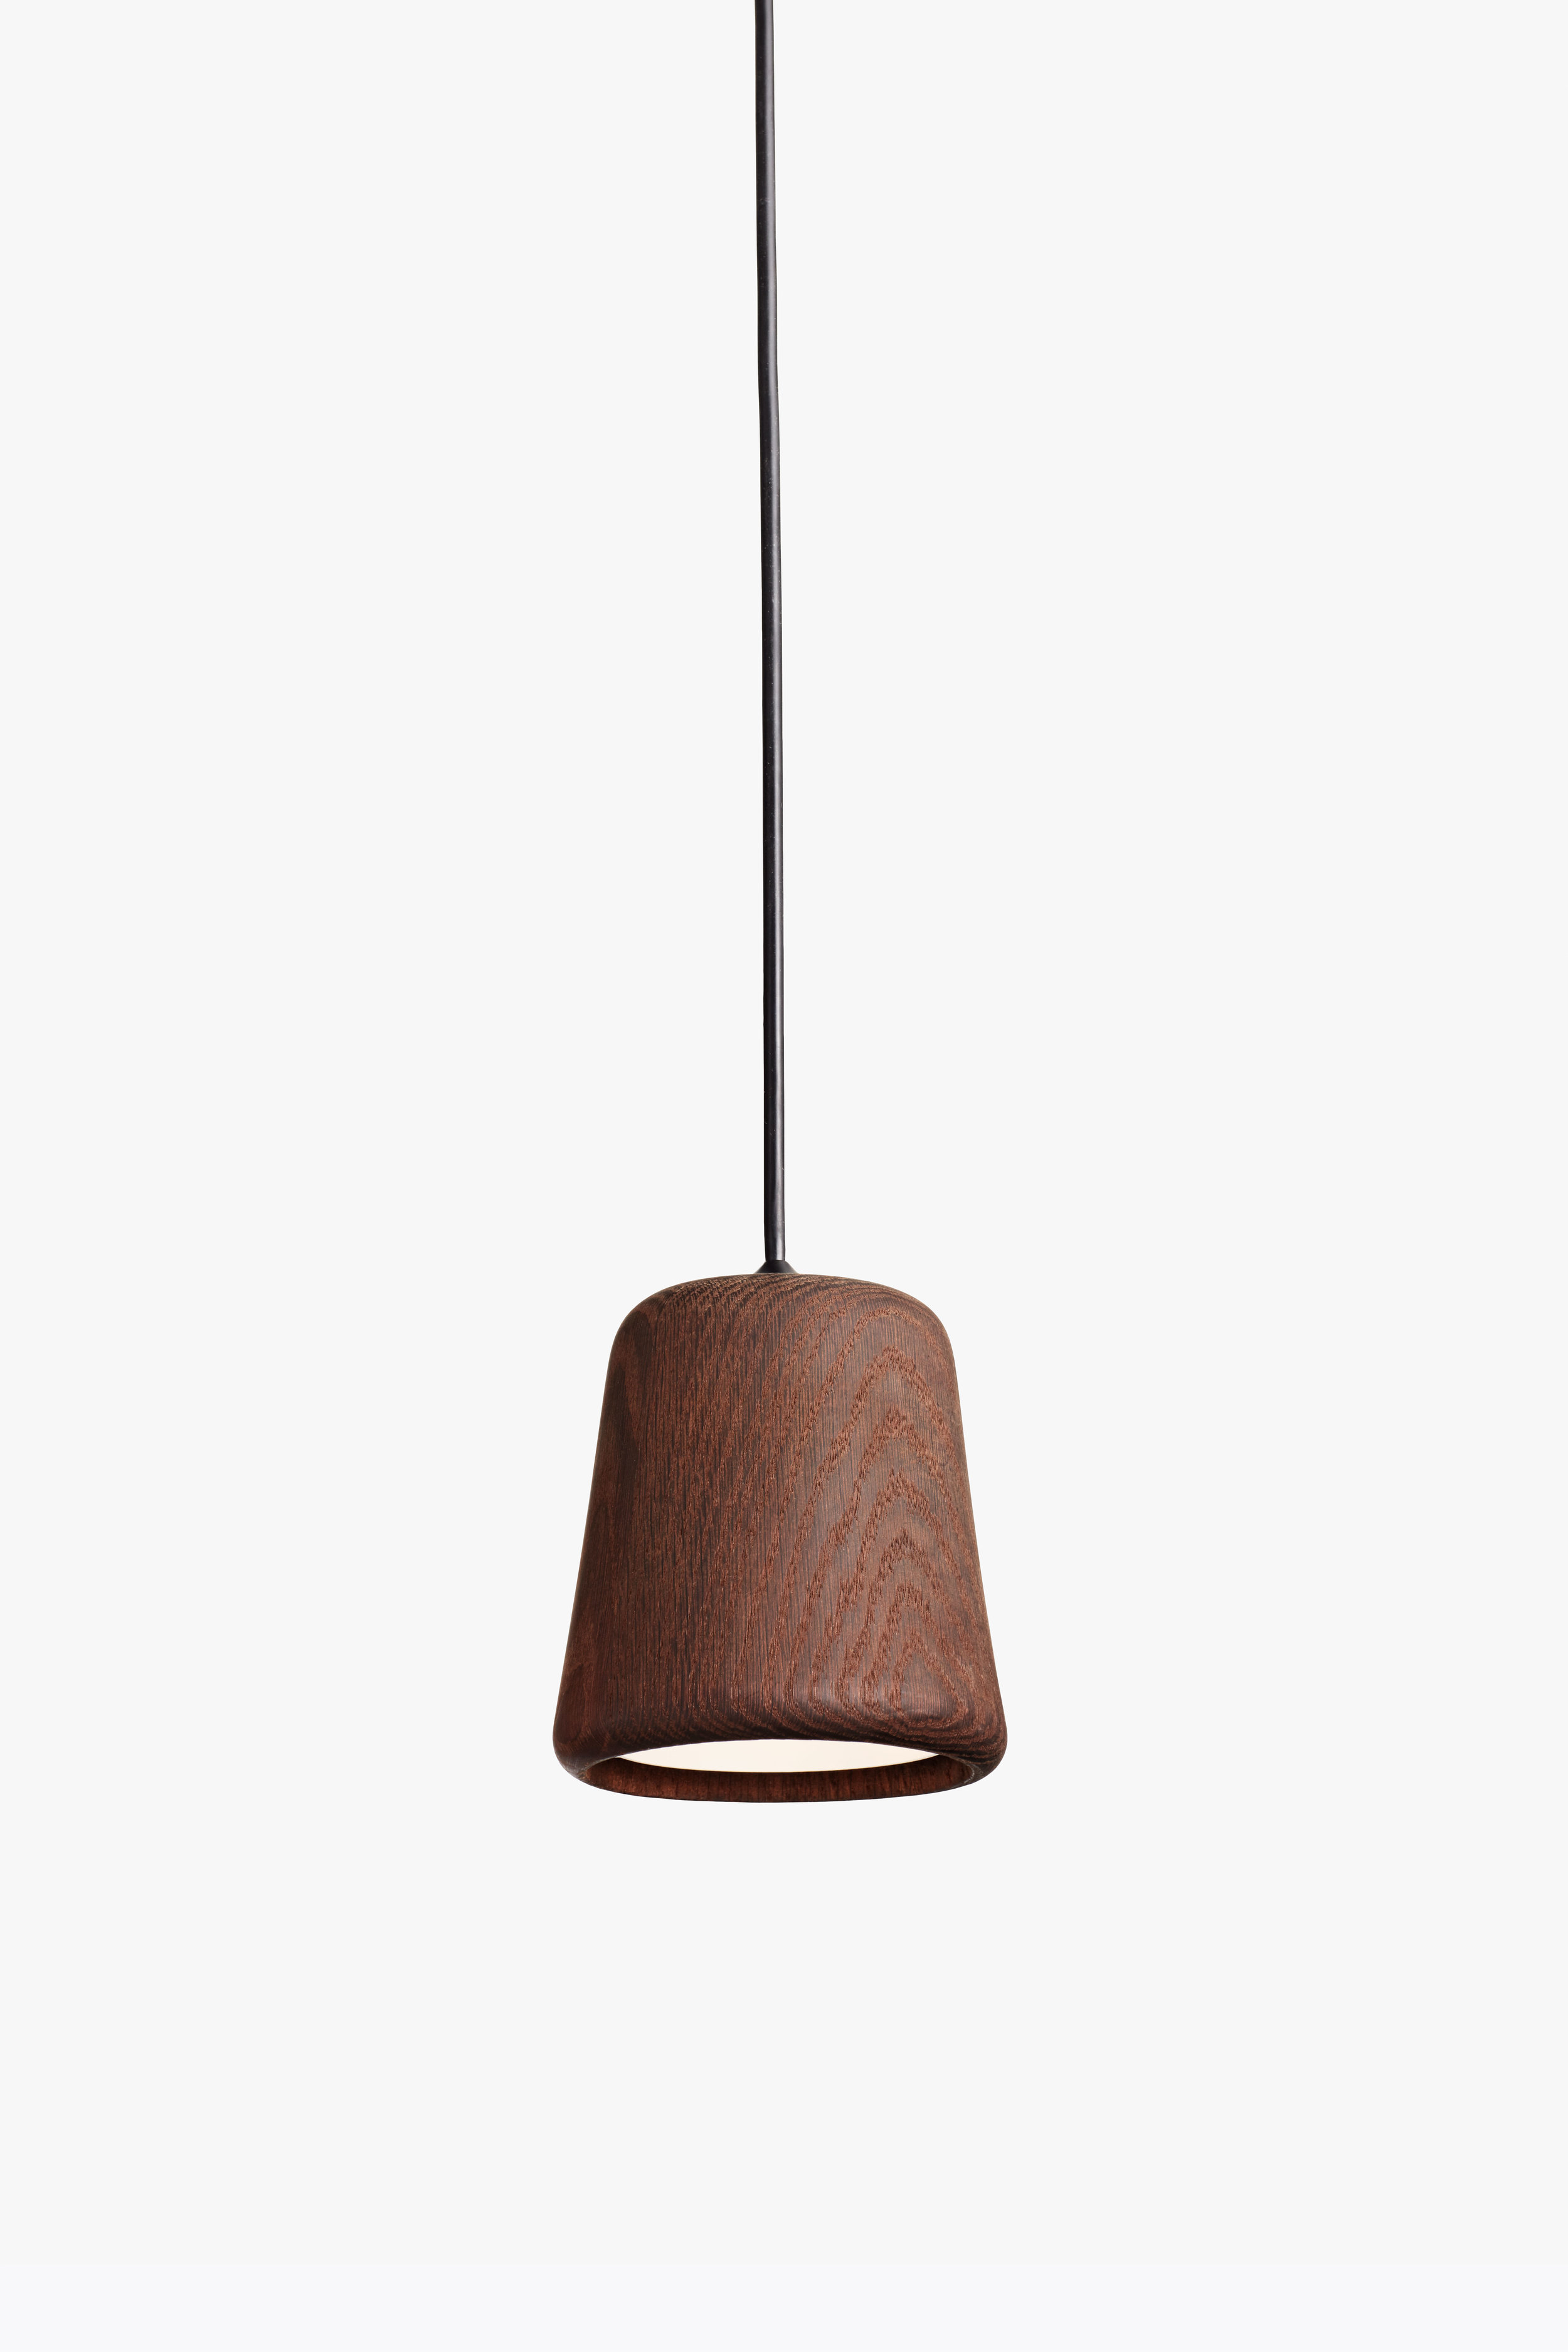 Material Pendant, Smoked Oak, New Works, High Res.jpg